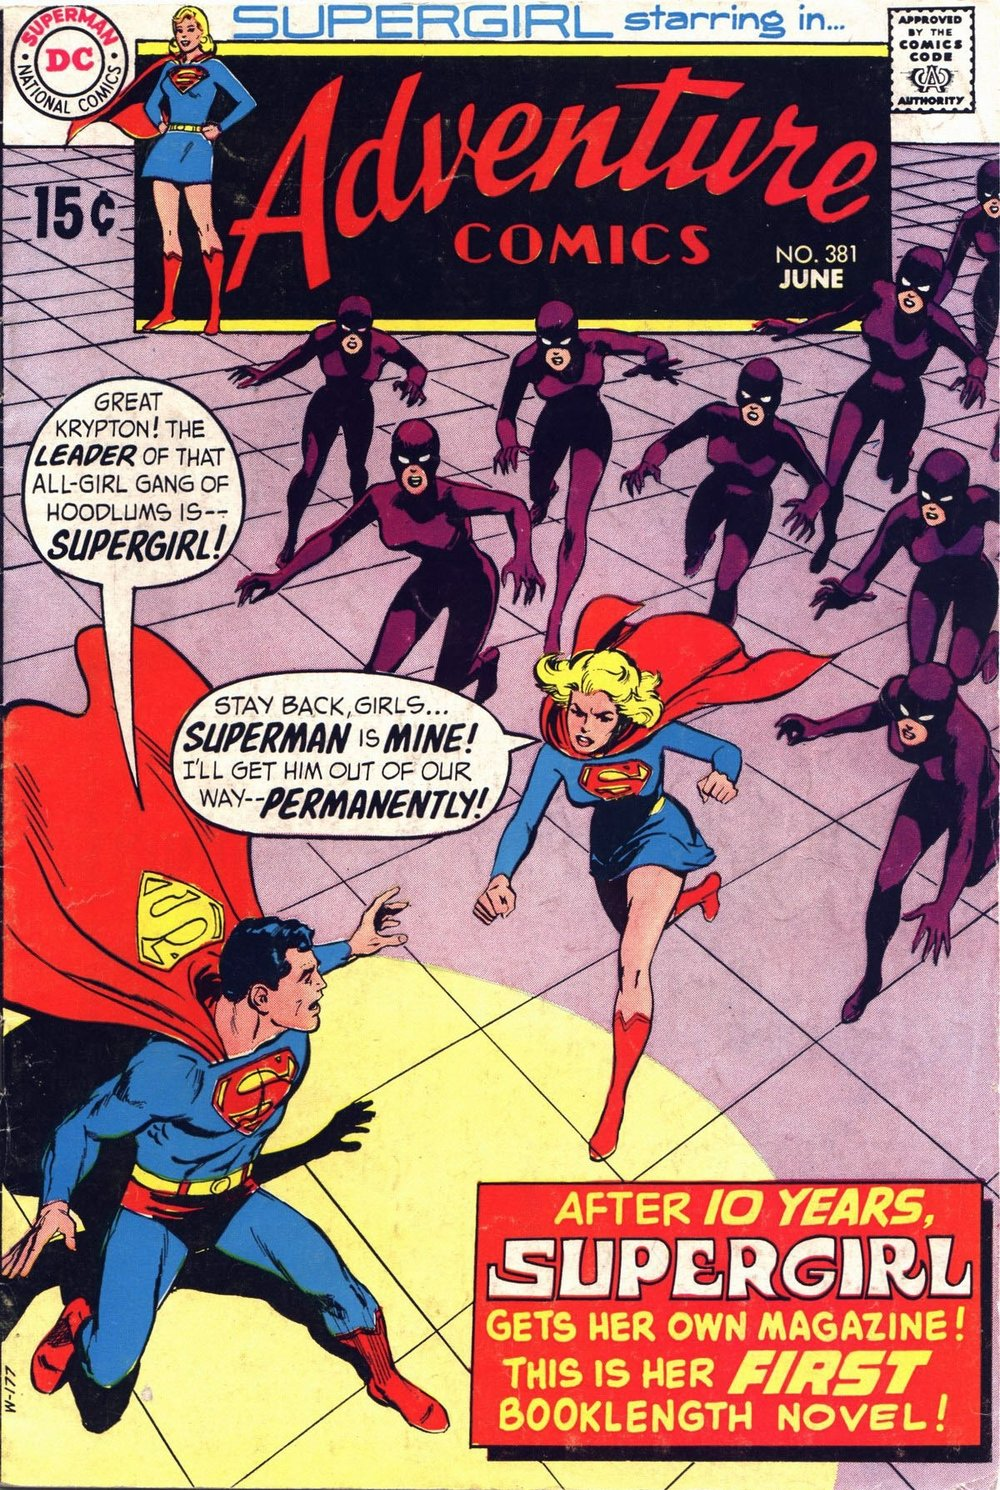 Adventure Comics (1938) #381, written by Cary Bates. Cover by Curt Swan & Neal Adams.